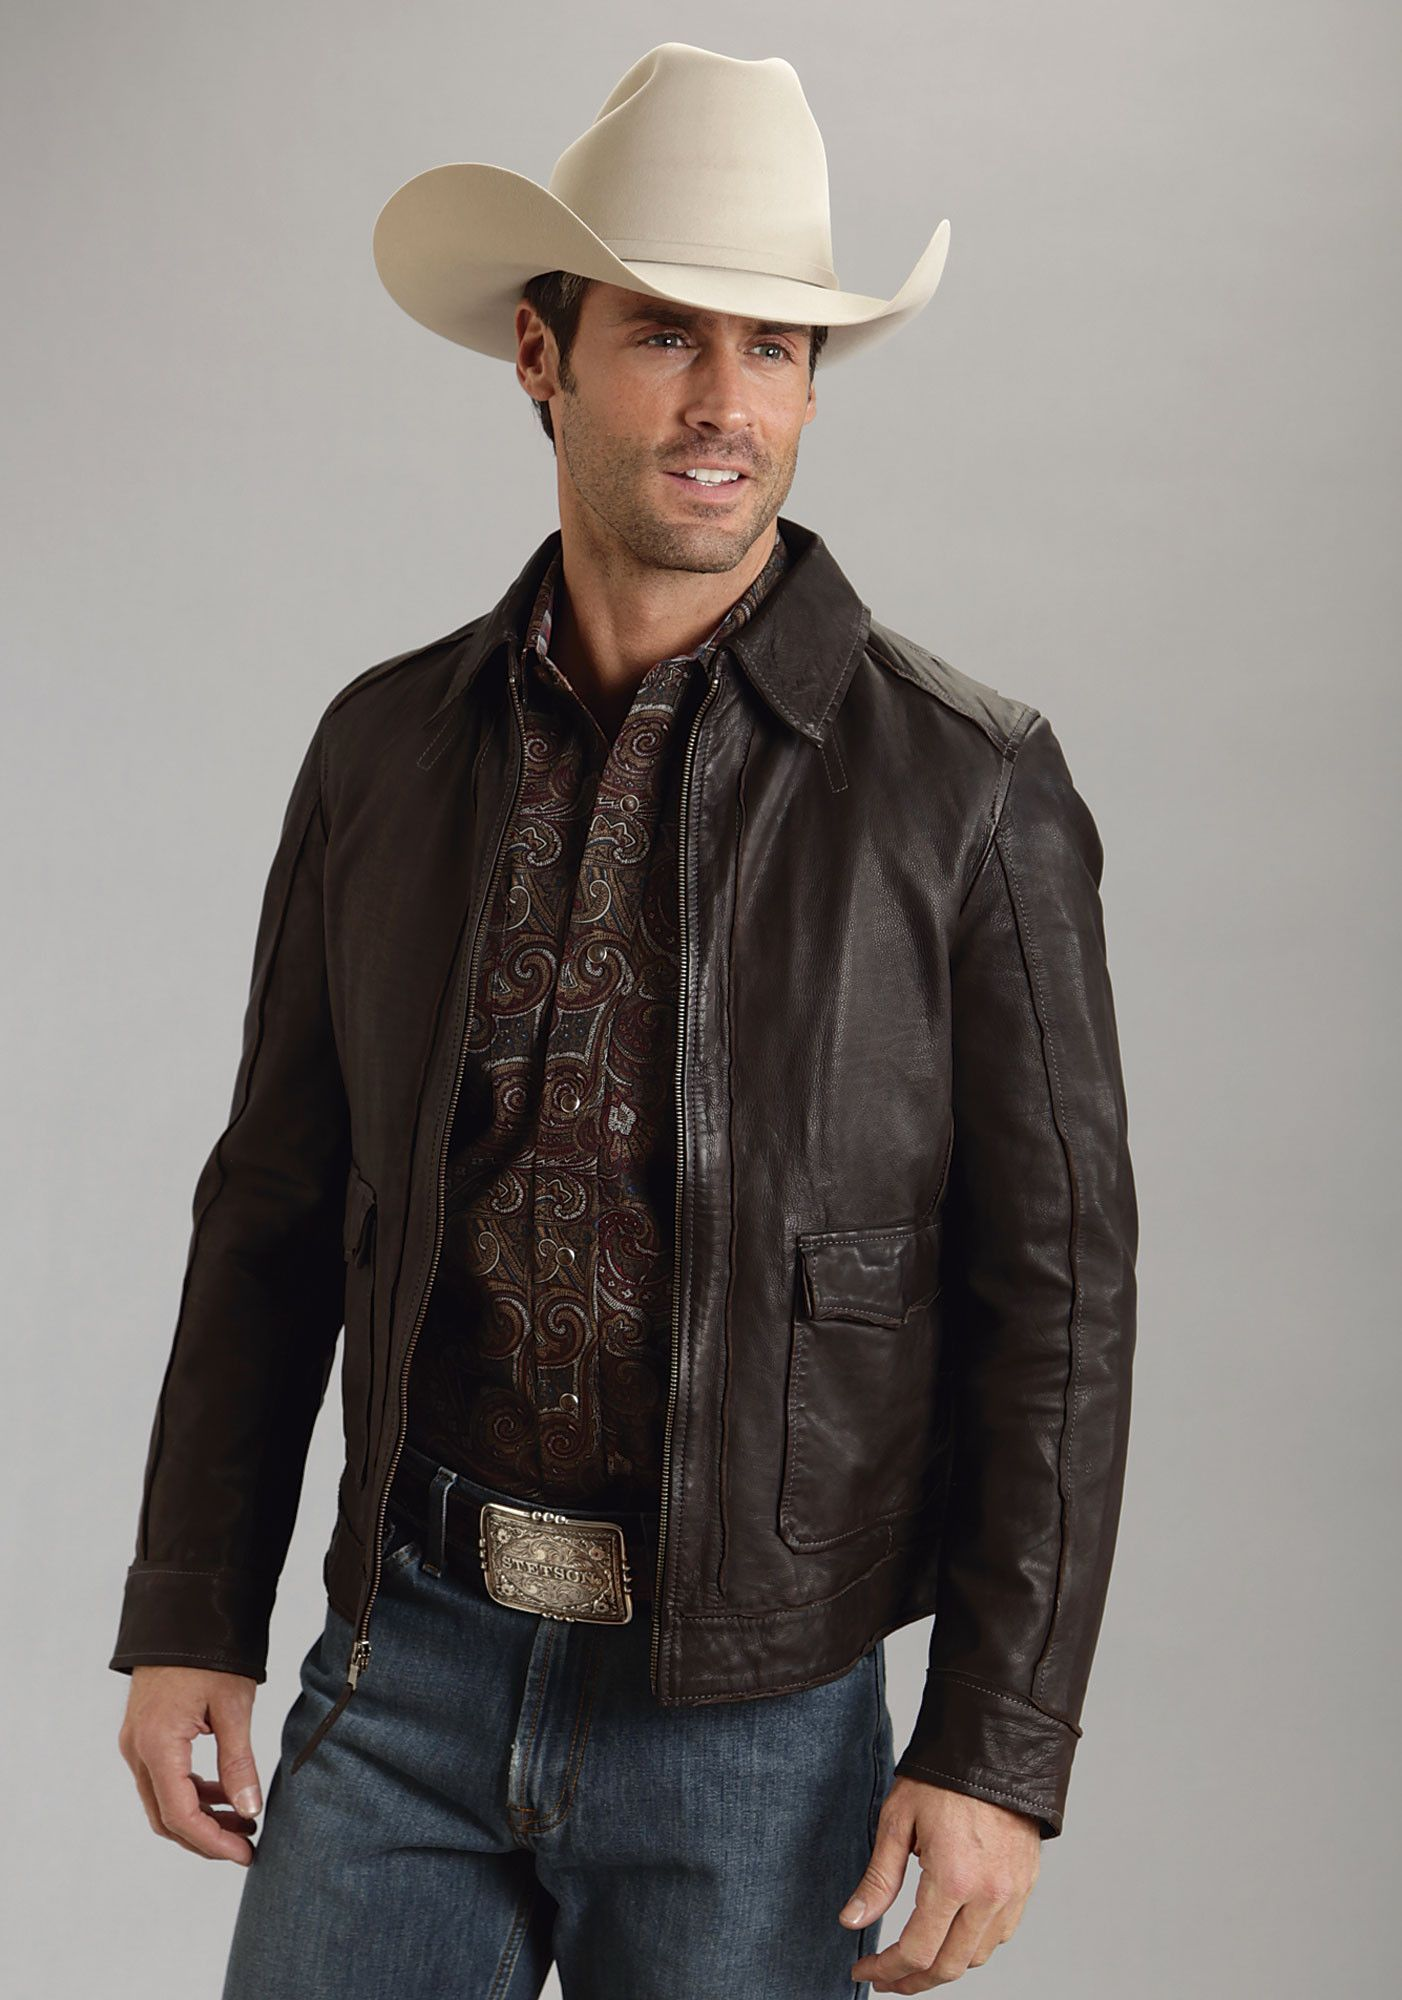 Cowboy Boots And Western Wear The Western Company Mens Outerwear Jacket Cowboy Outfit For Men Leather Jacket [ 2000 x 1402 Pixel ]